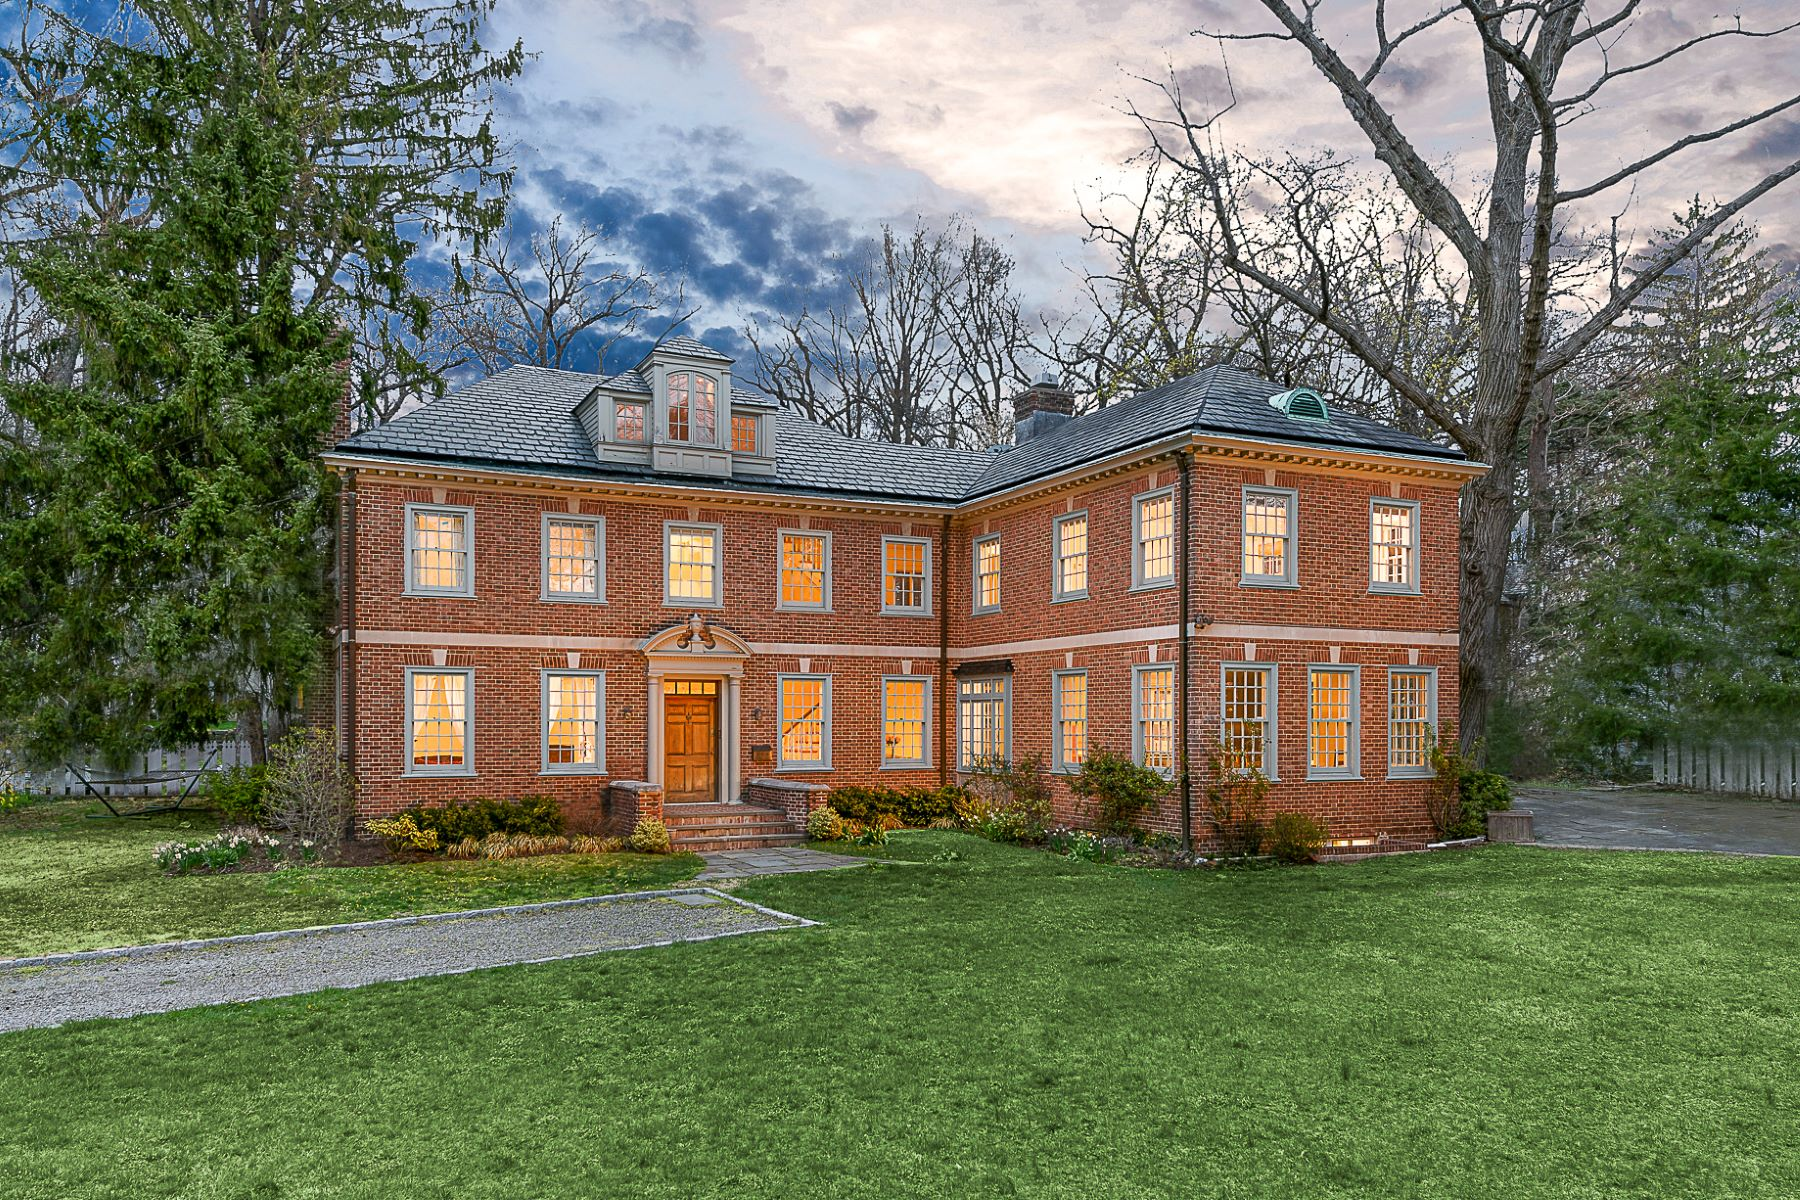 Single Family Home for Sale at Magnificent Georgian in Fieldston 4524 Greystone Avenue Riverdale, New York 10471 United States